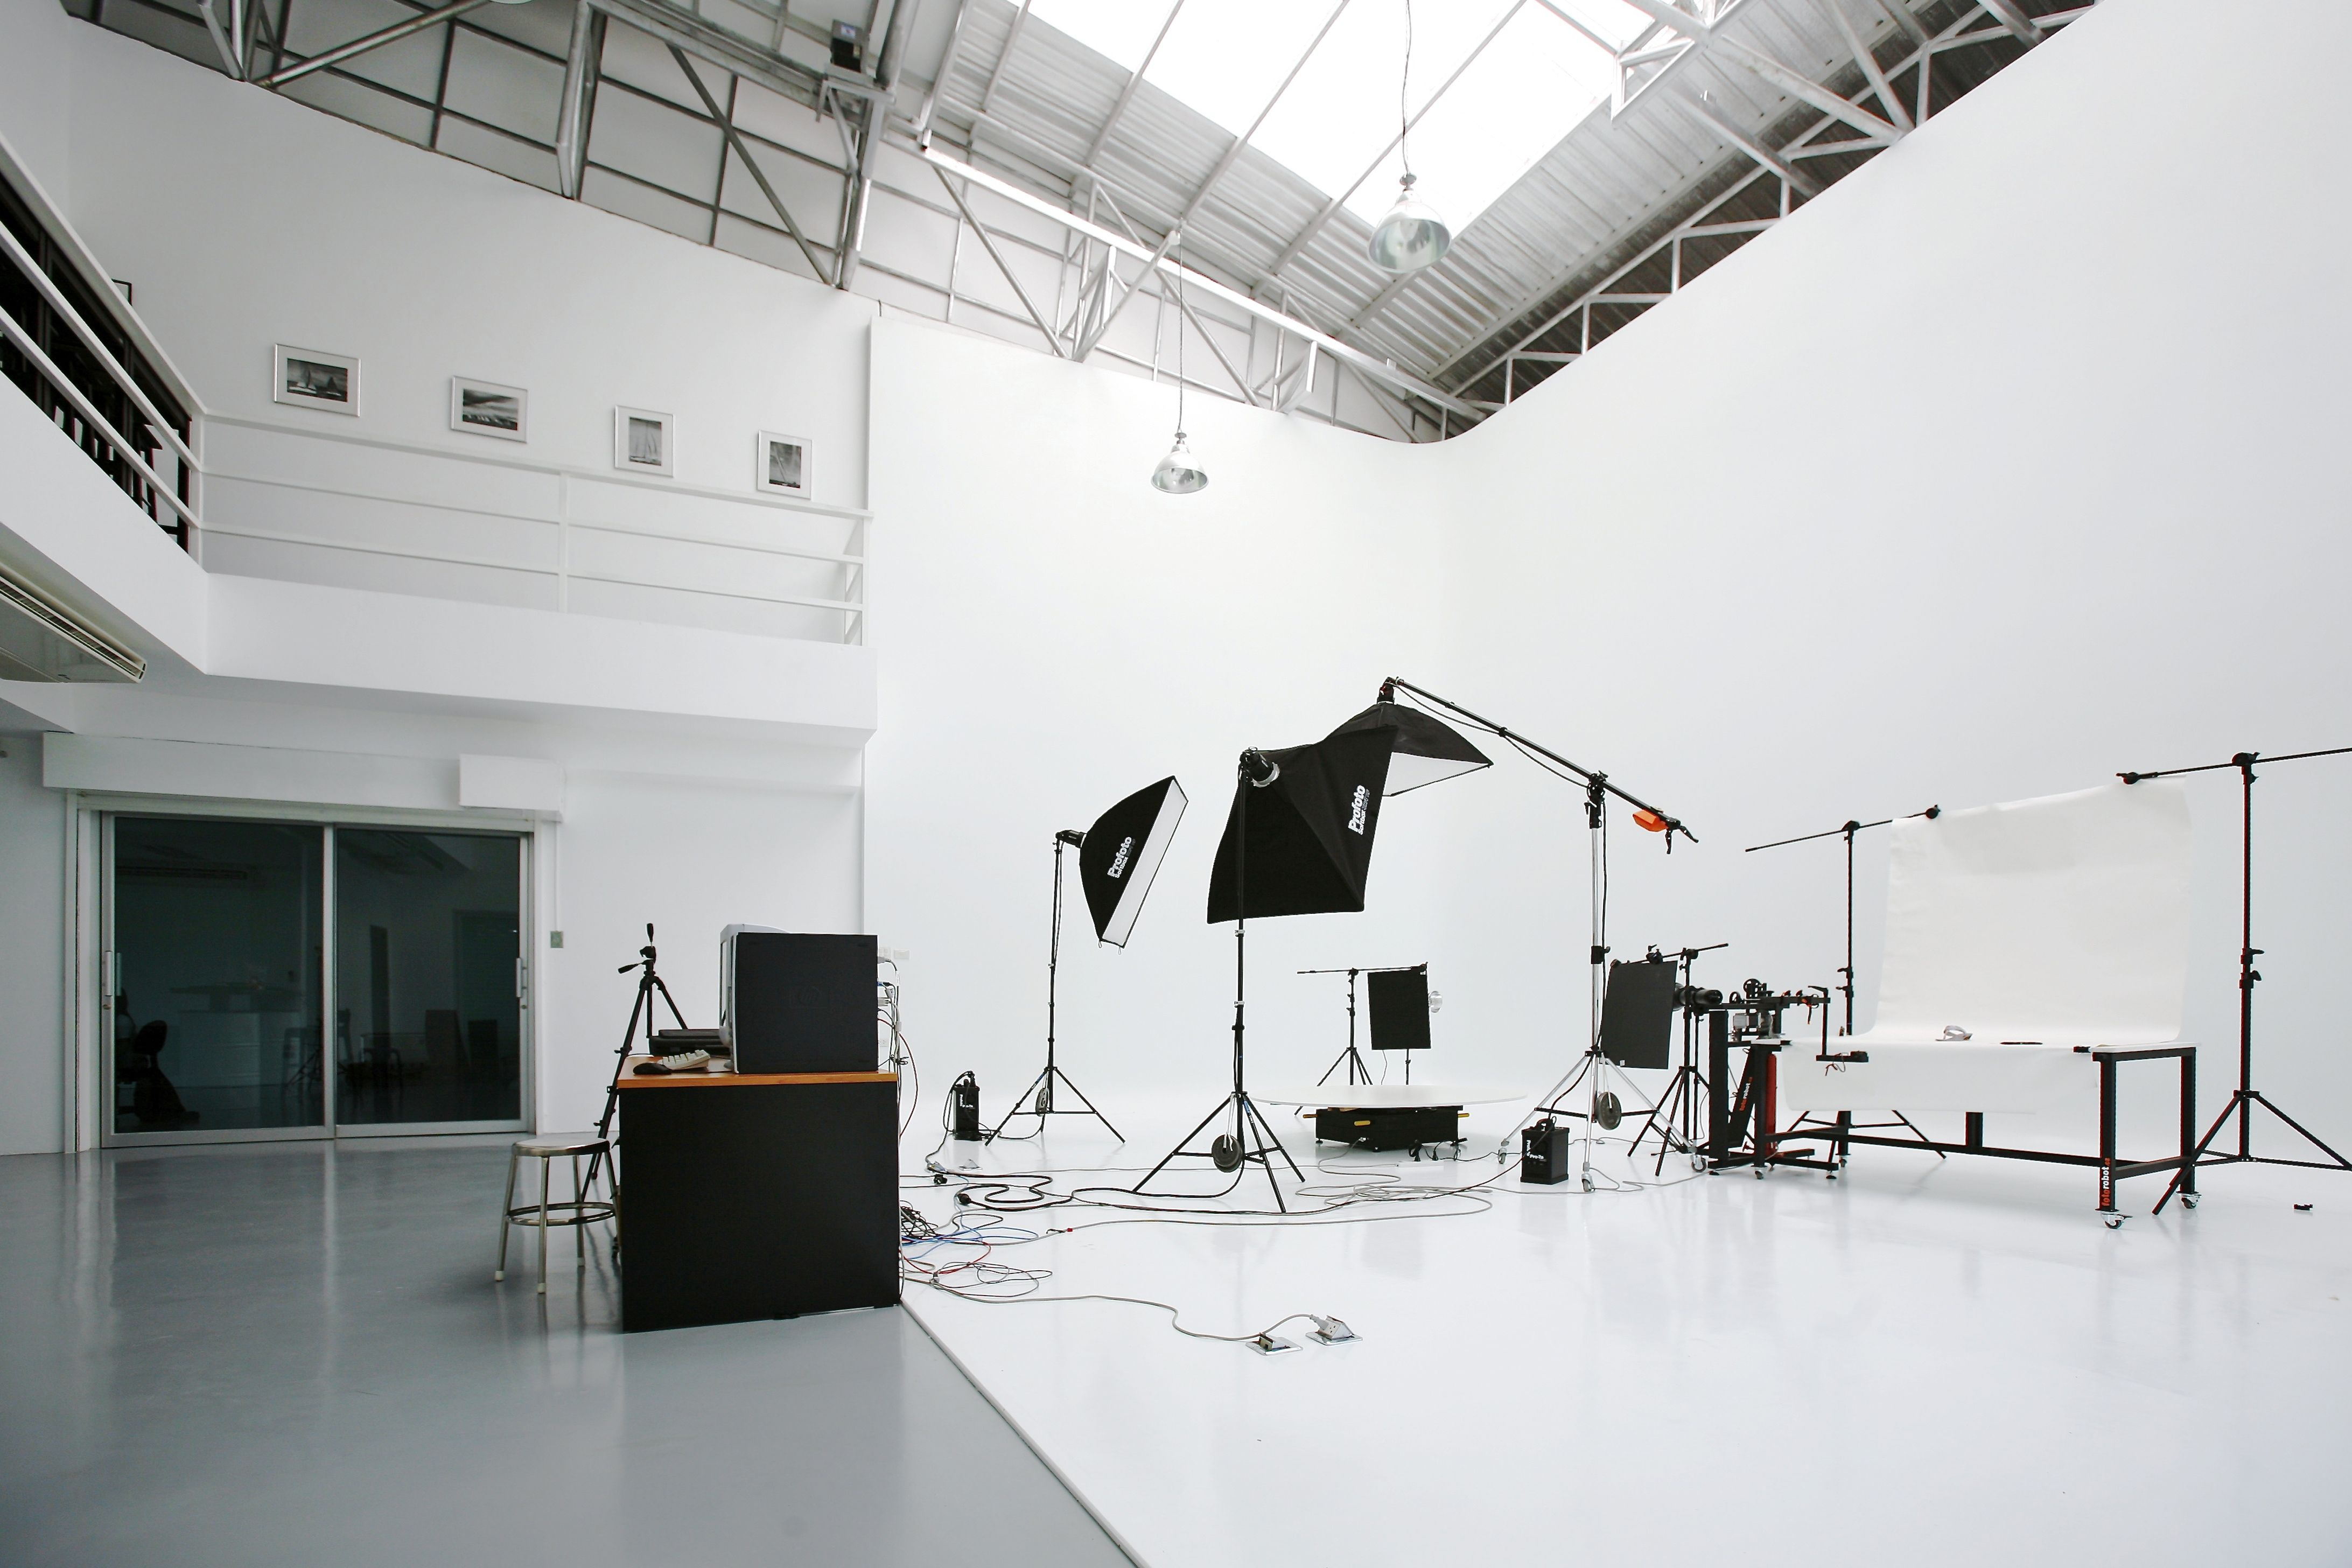 Photography Stage Idinity Vision Studios Photography Studio Setup Photography Studio Design Studio Photography